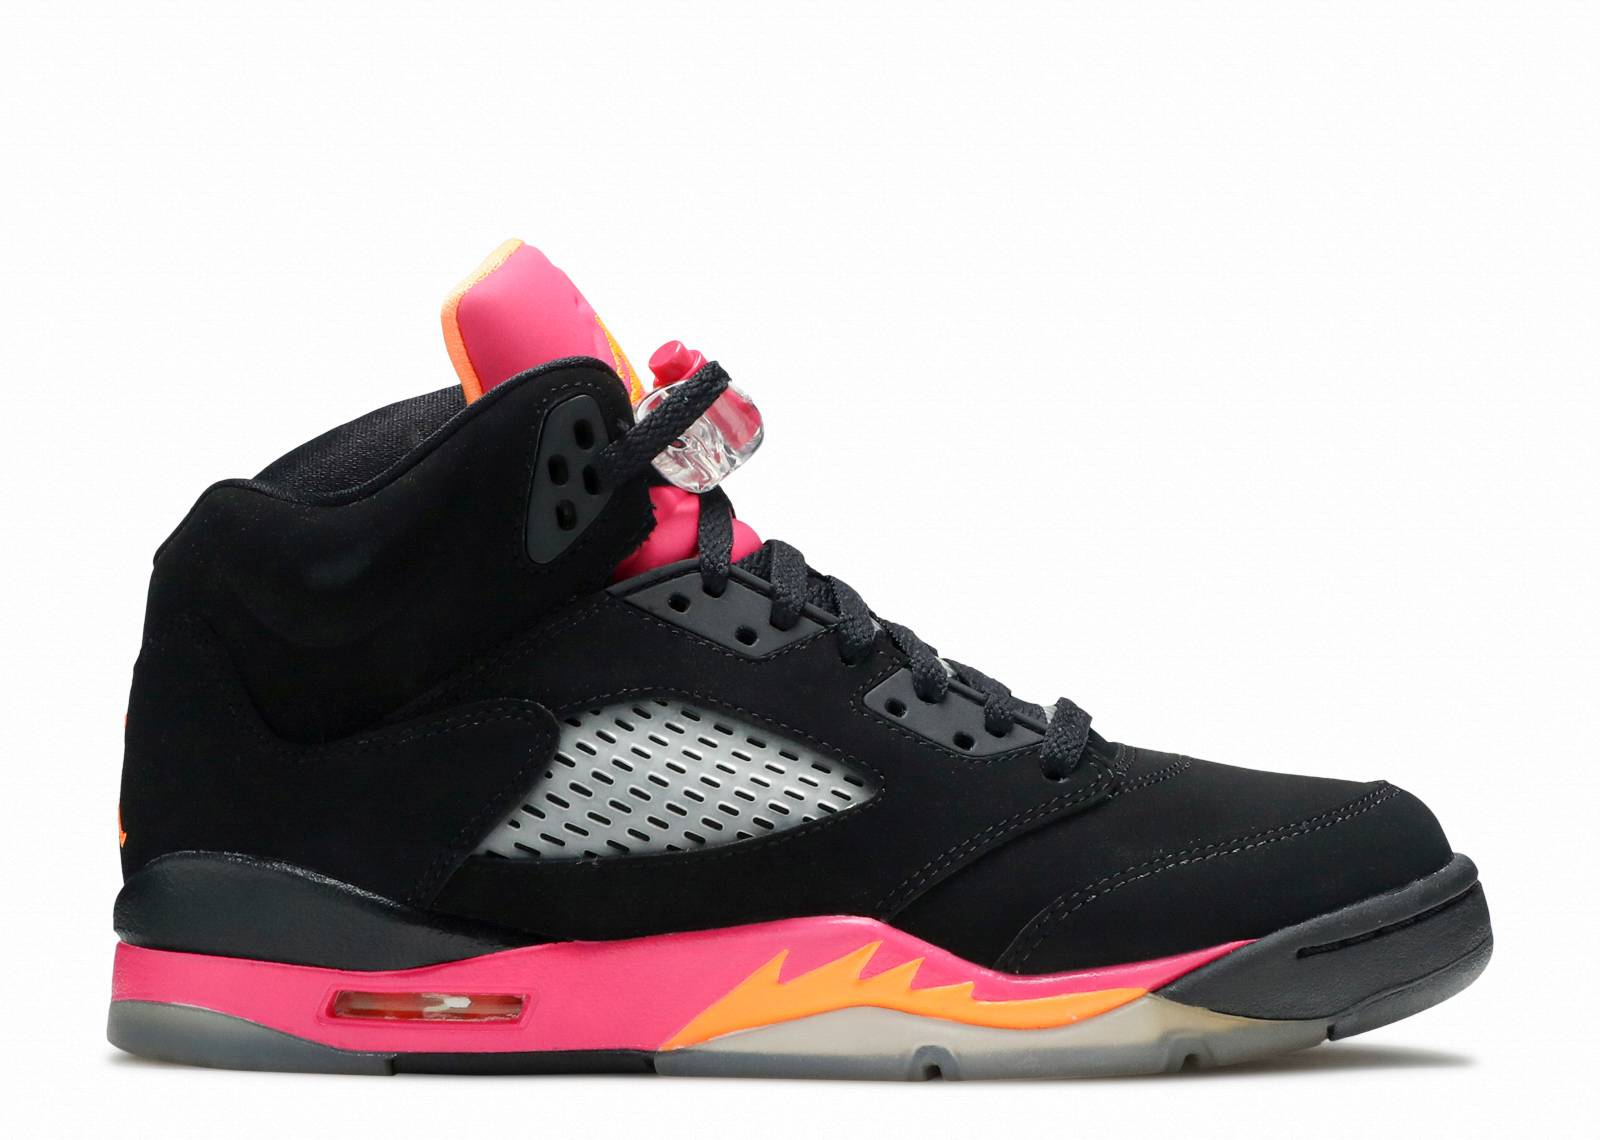 Girls Air Jordan 5 Retro (GS) 'Floridian' - 440892-067 - Size 7 - 1mJRQhOwwg